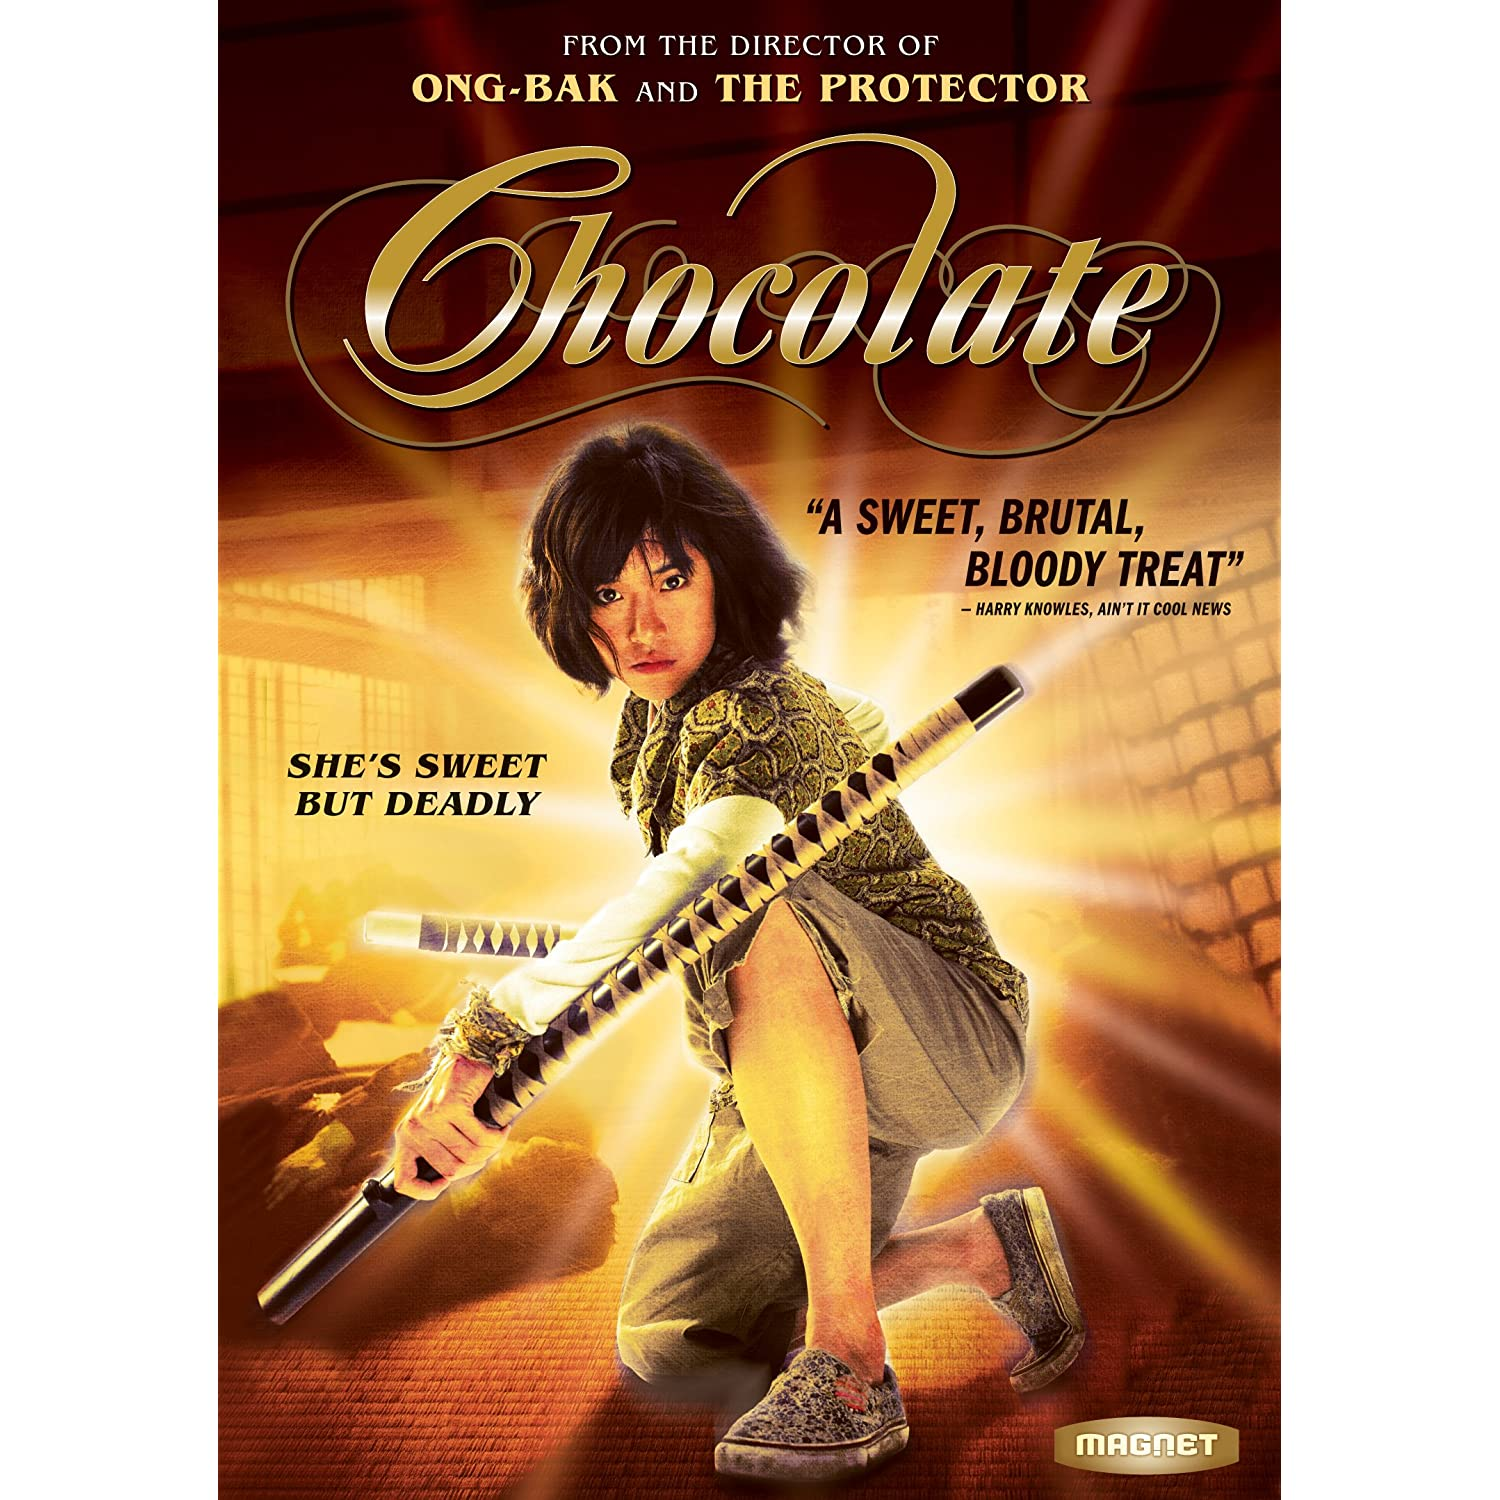 Chocolate DVD Cover